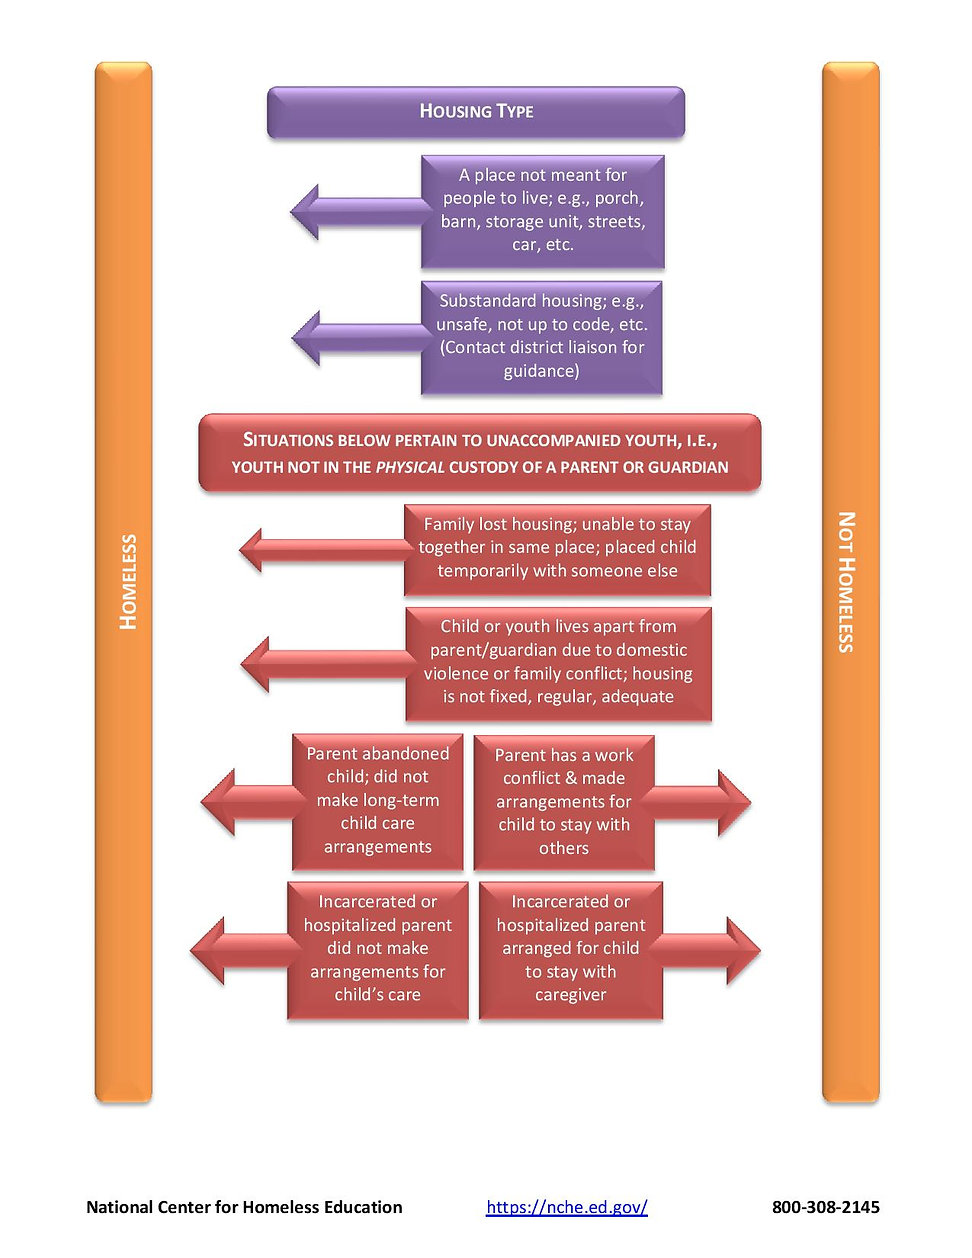 NCHE-Eligibility-Flowchart-page-002.jpg